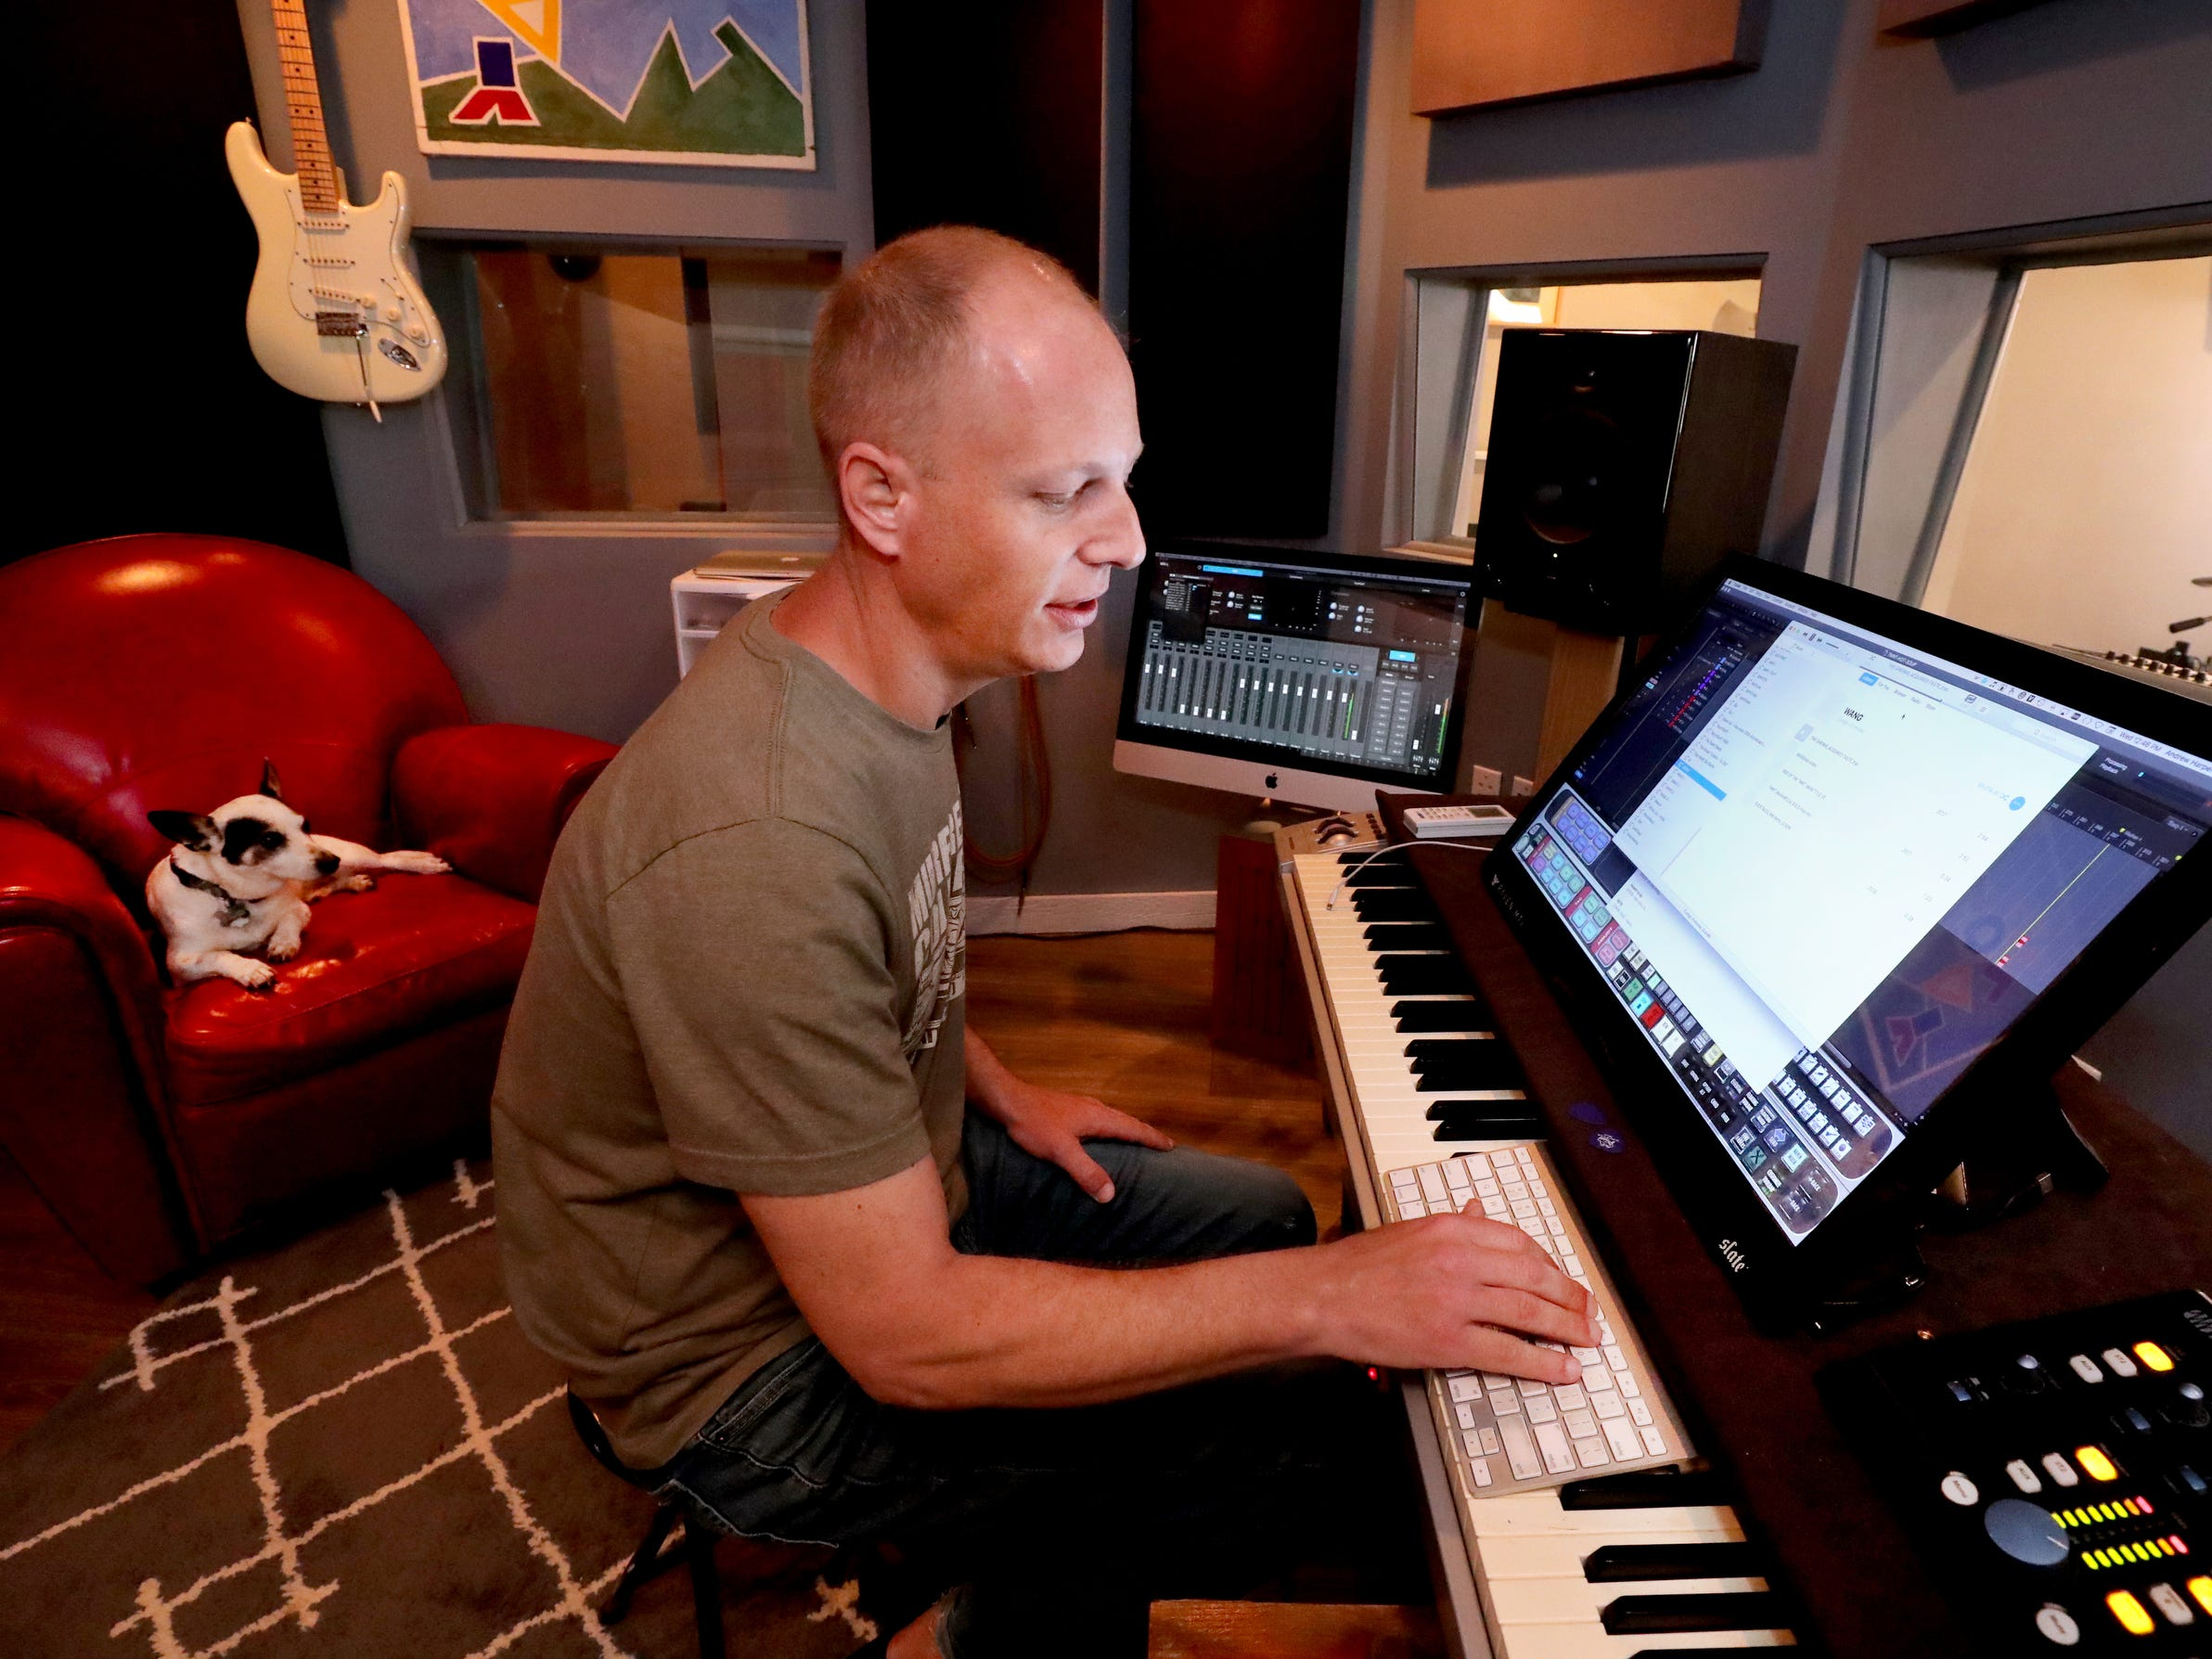 Andy Harper pulls up some pulls up some examples of his work  in his studio Limitedwave Recordings on Wednesday April 10, 2019, as his dog Jackson relaxes in the chair behind him.